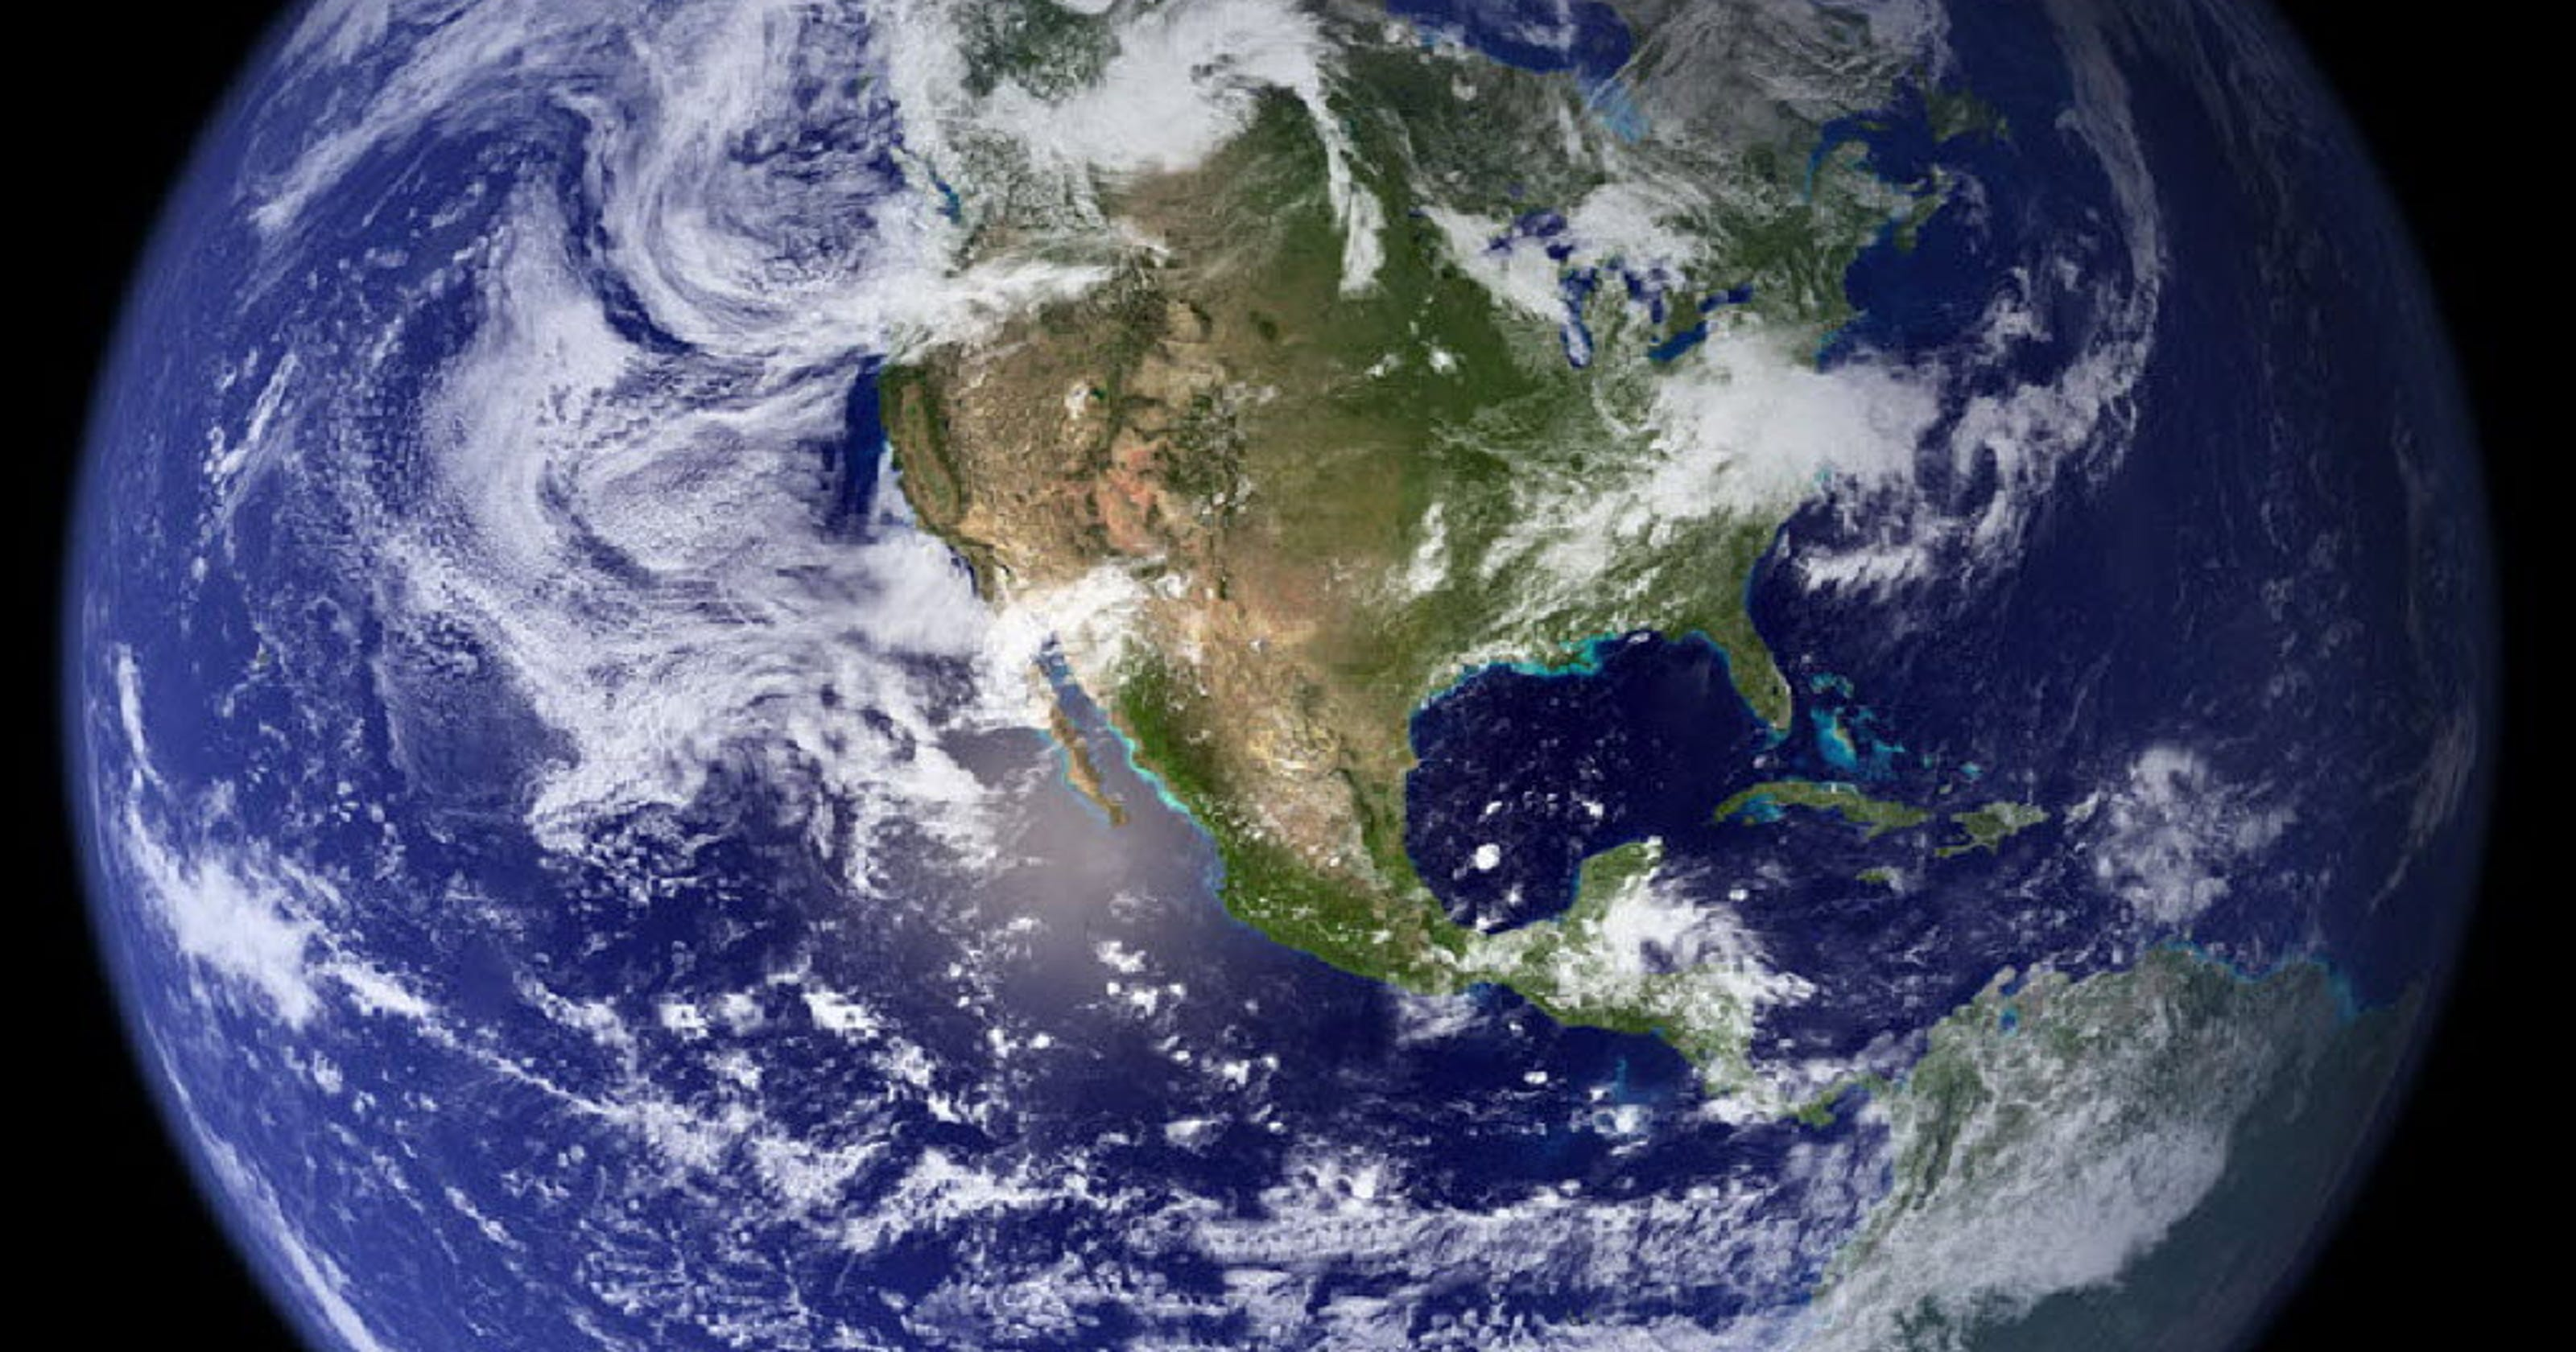 Editorial planet earth needs a little respect malvernweather Image collections